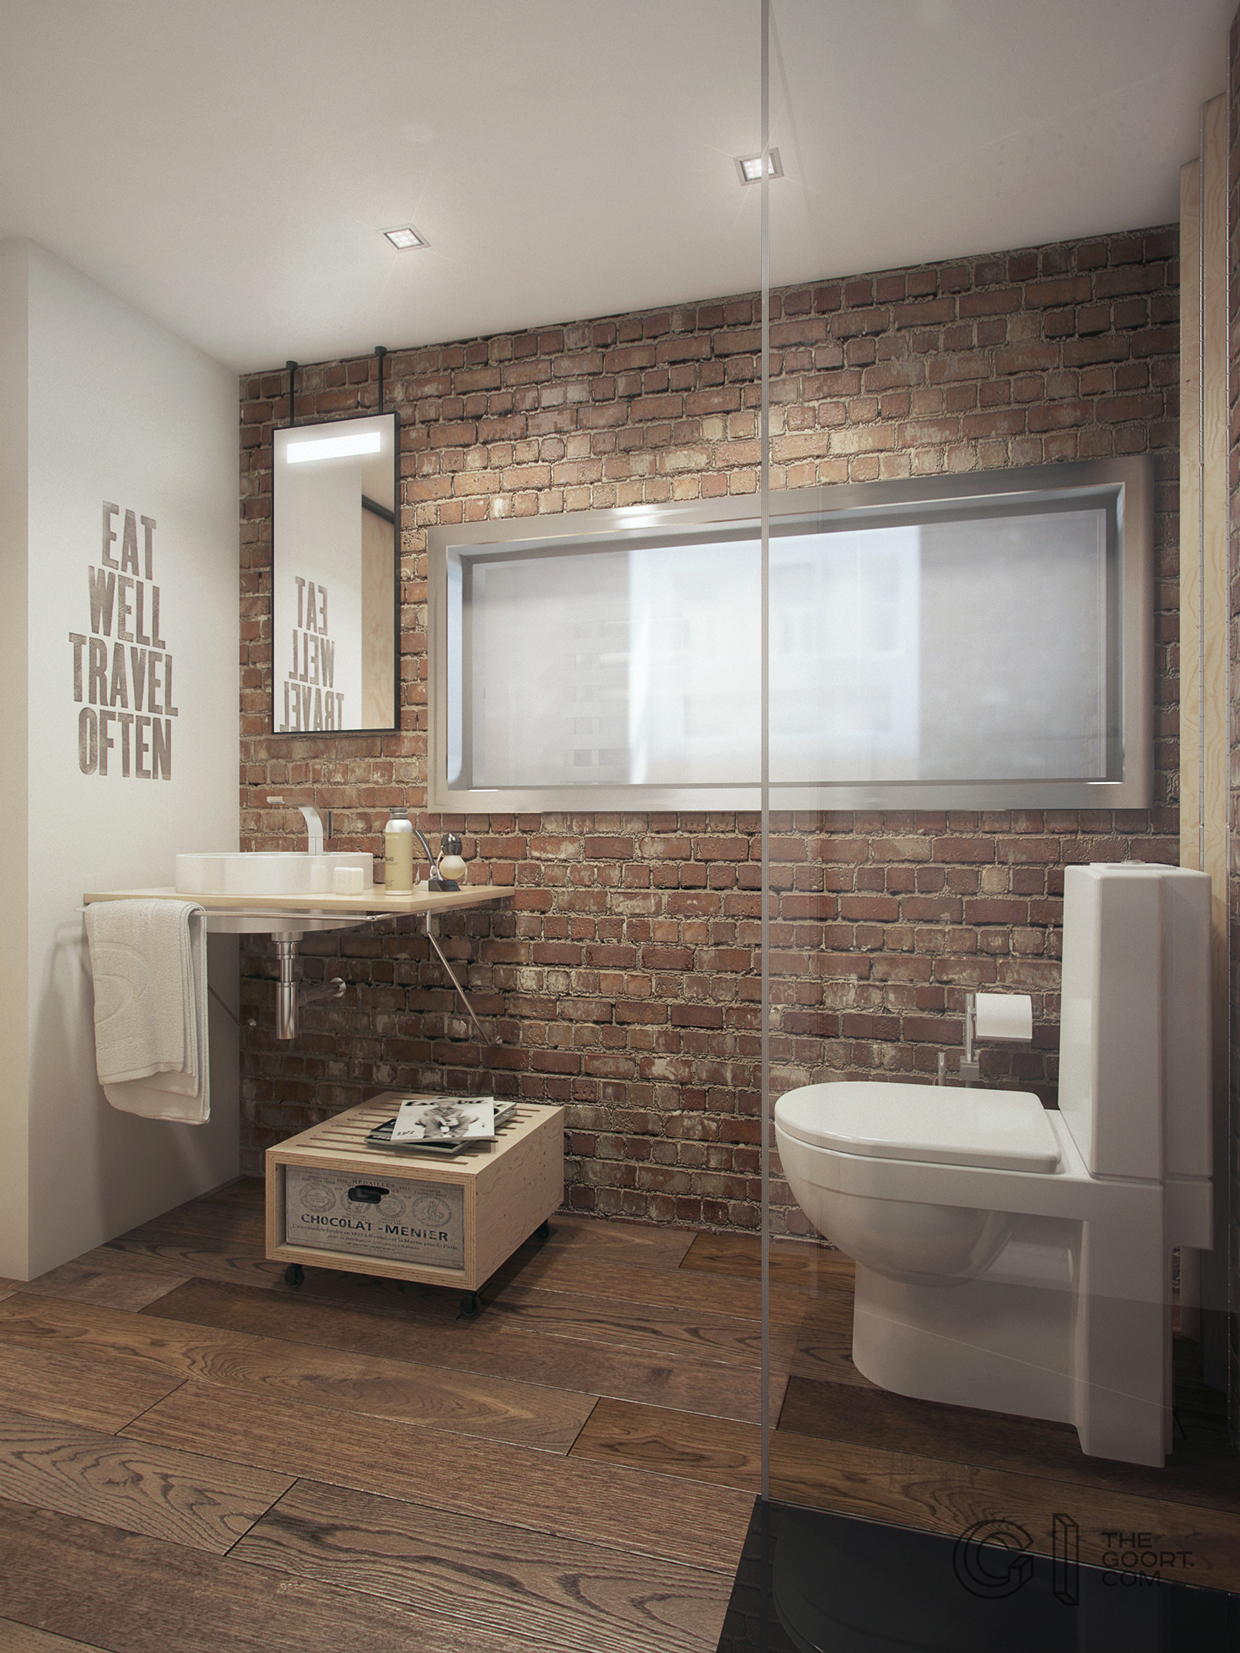 Artsy Bathroom - A super small apartment that adapts to its owner s needs